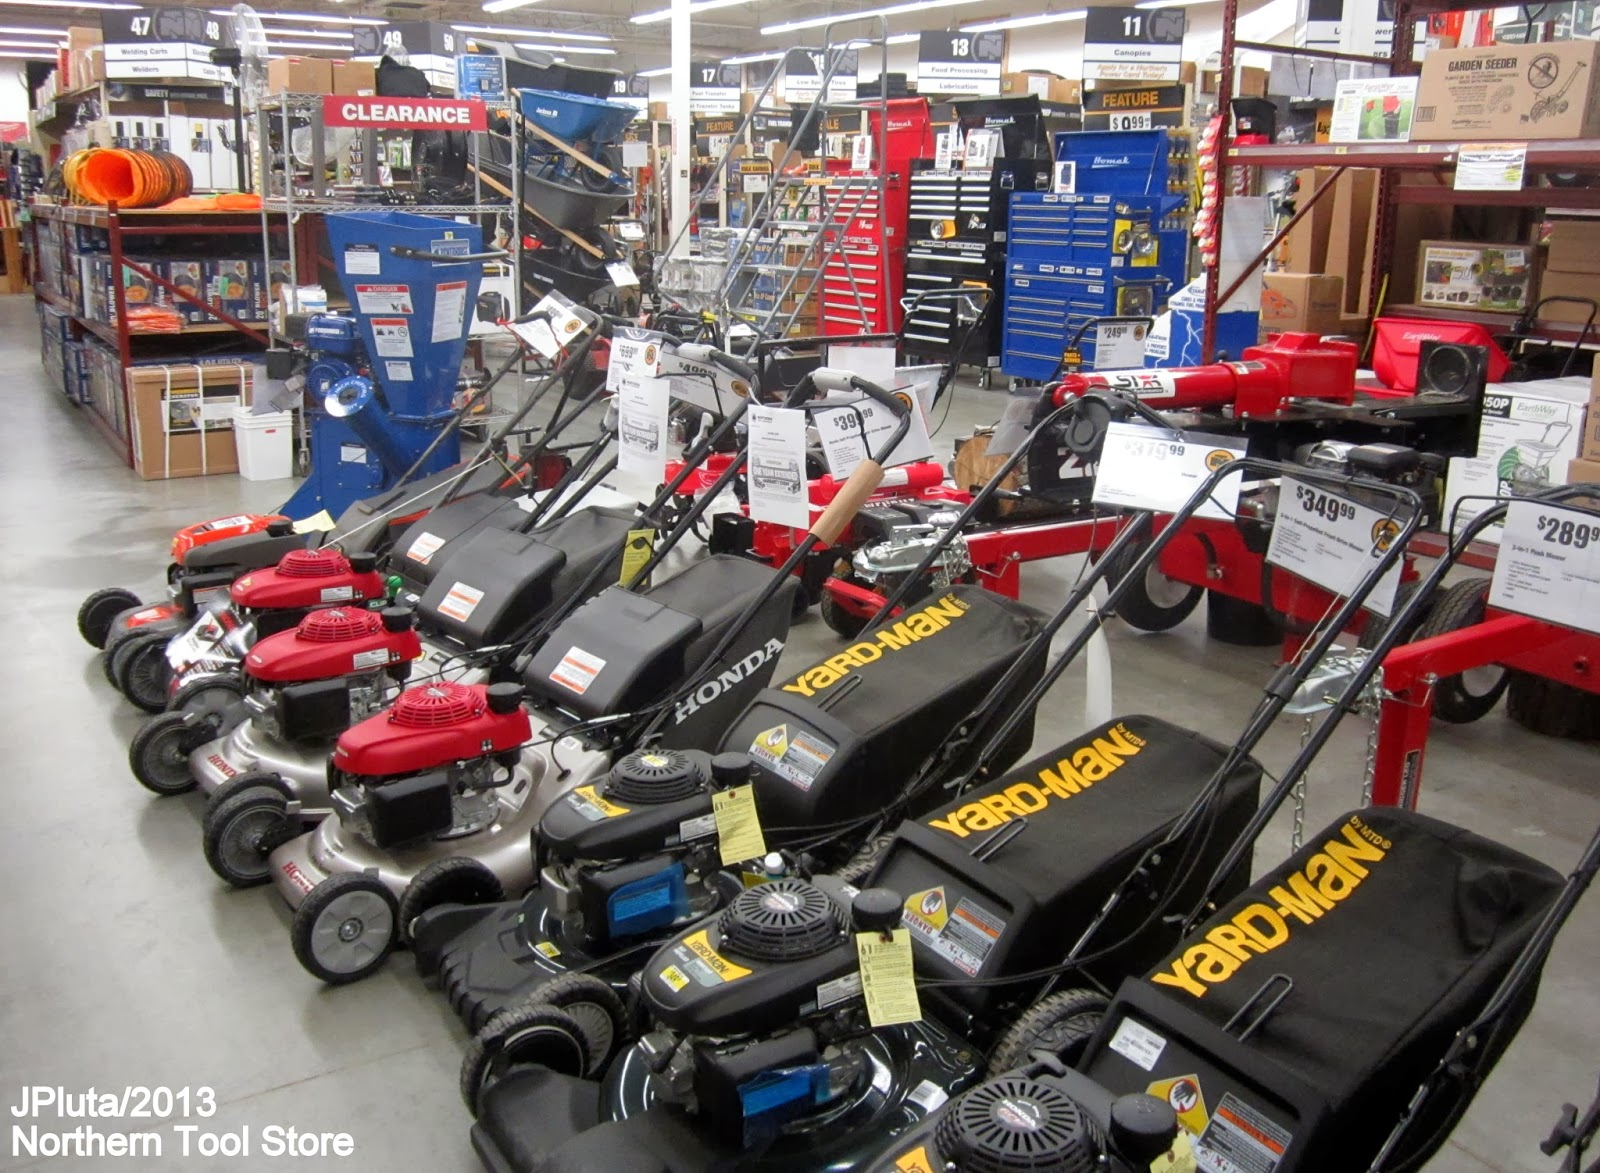 How does Harbor Freight sell GREAT QUALITY tools at the LOWEST prices?